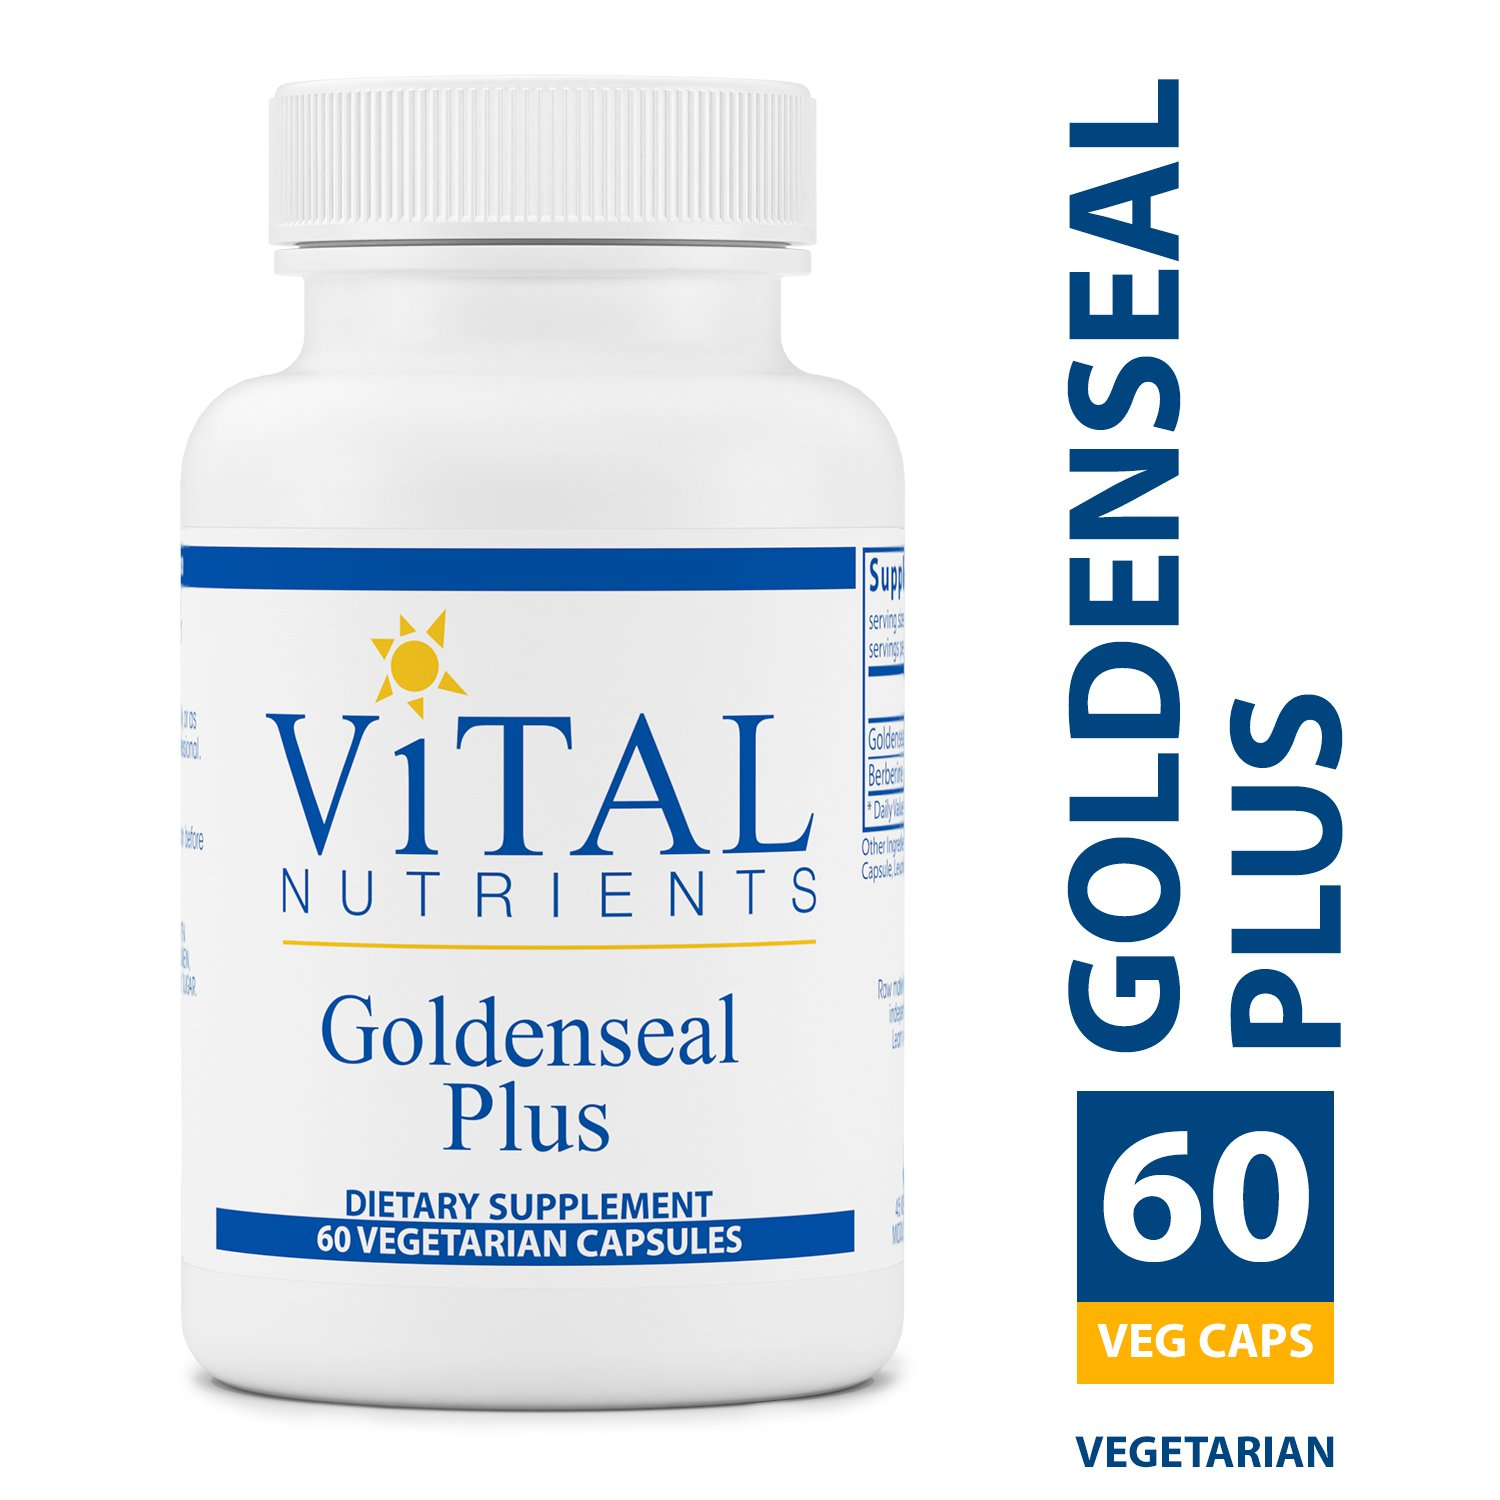 Vital Nutrients - Goldenseal Plus - Supports Healthy Immune & Gastrointestinal Function - 60 Capsules per Bottle